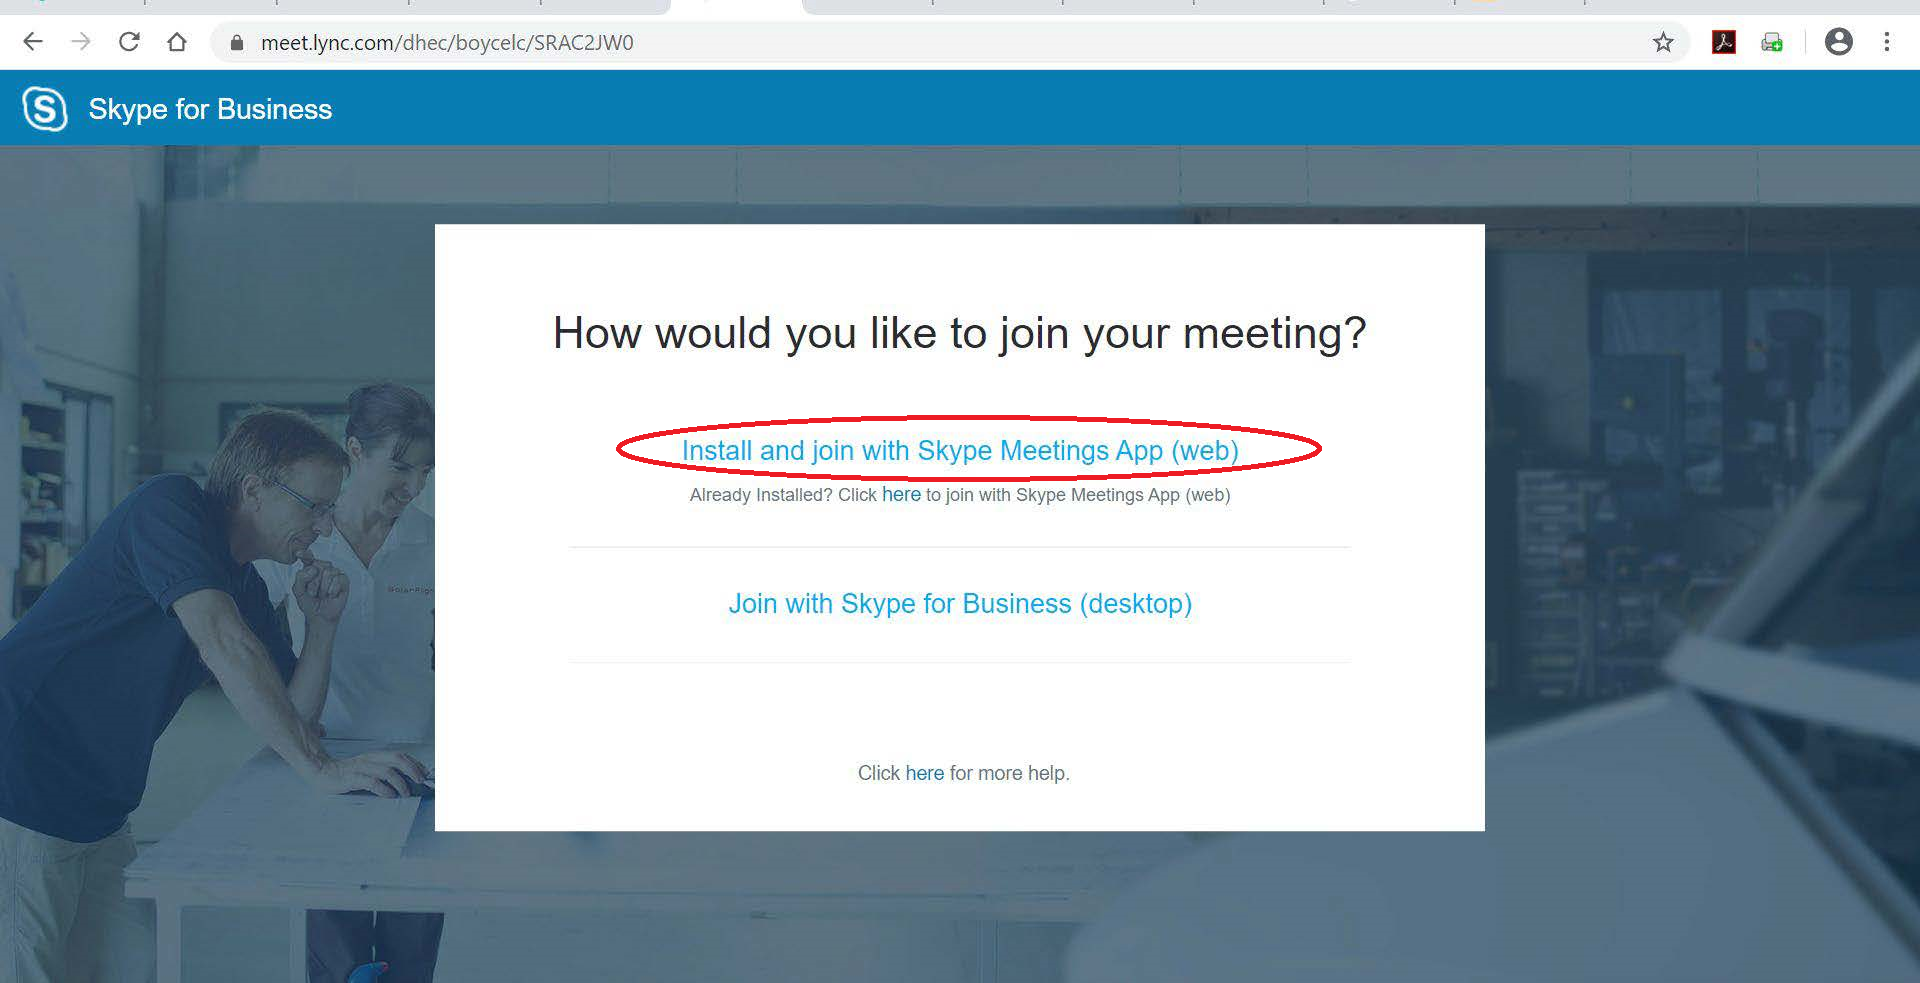 Join Skype Instructions - Step 2